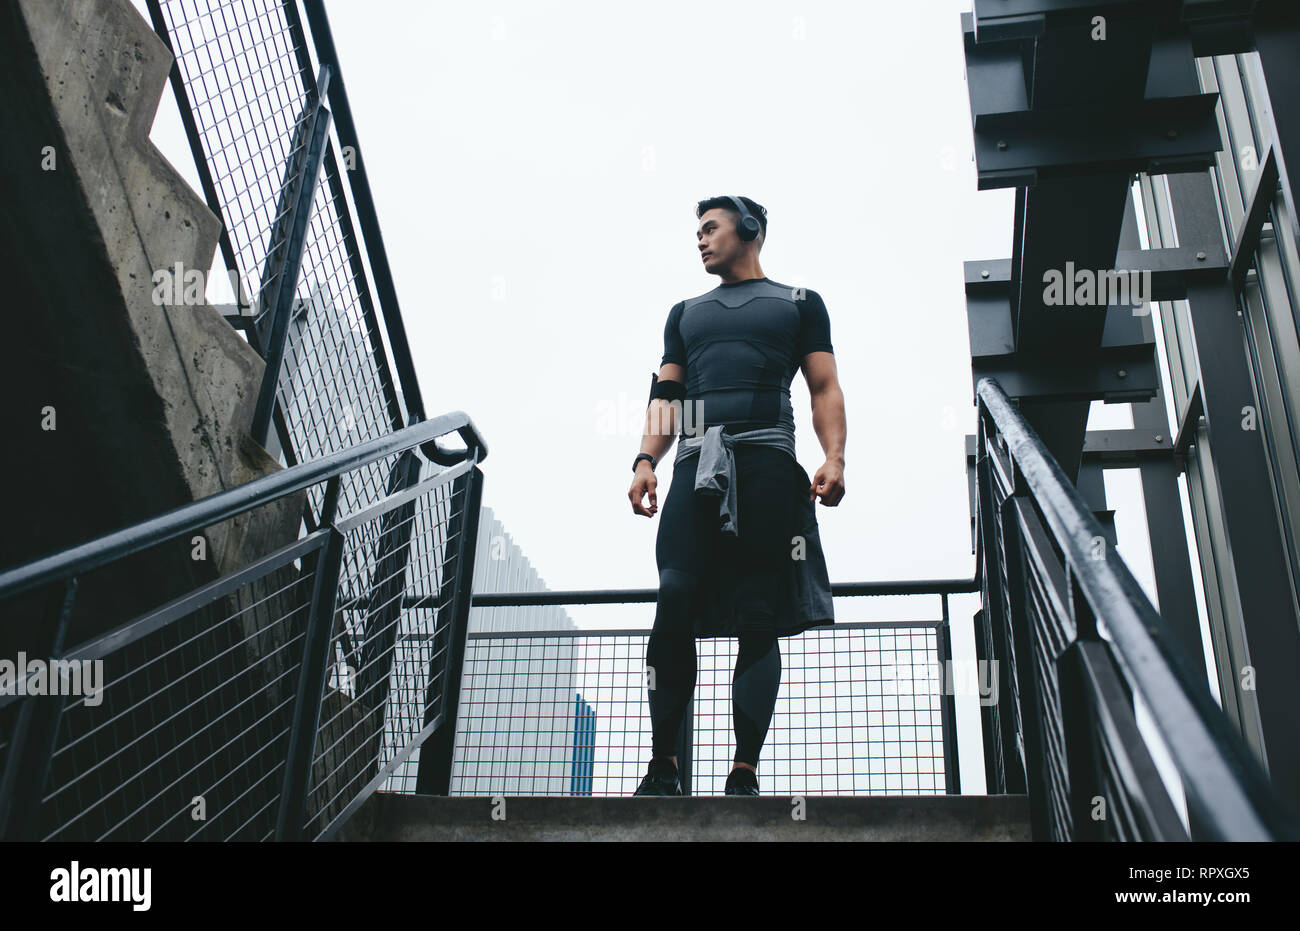 Low angle view of fitness man in sports wear standing on the steps outside. Fit man taking a break during workout. - Stock Image